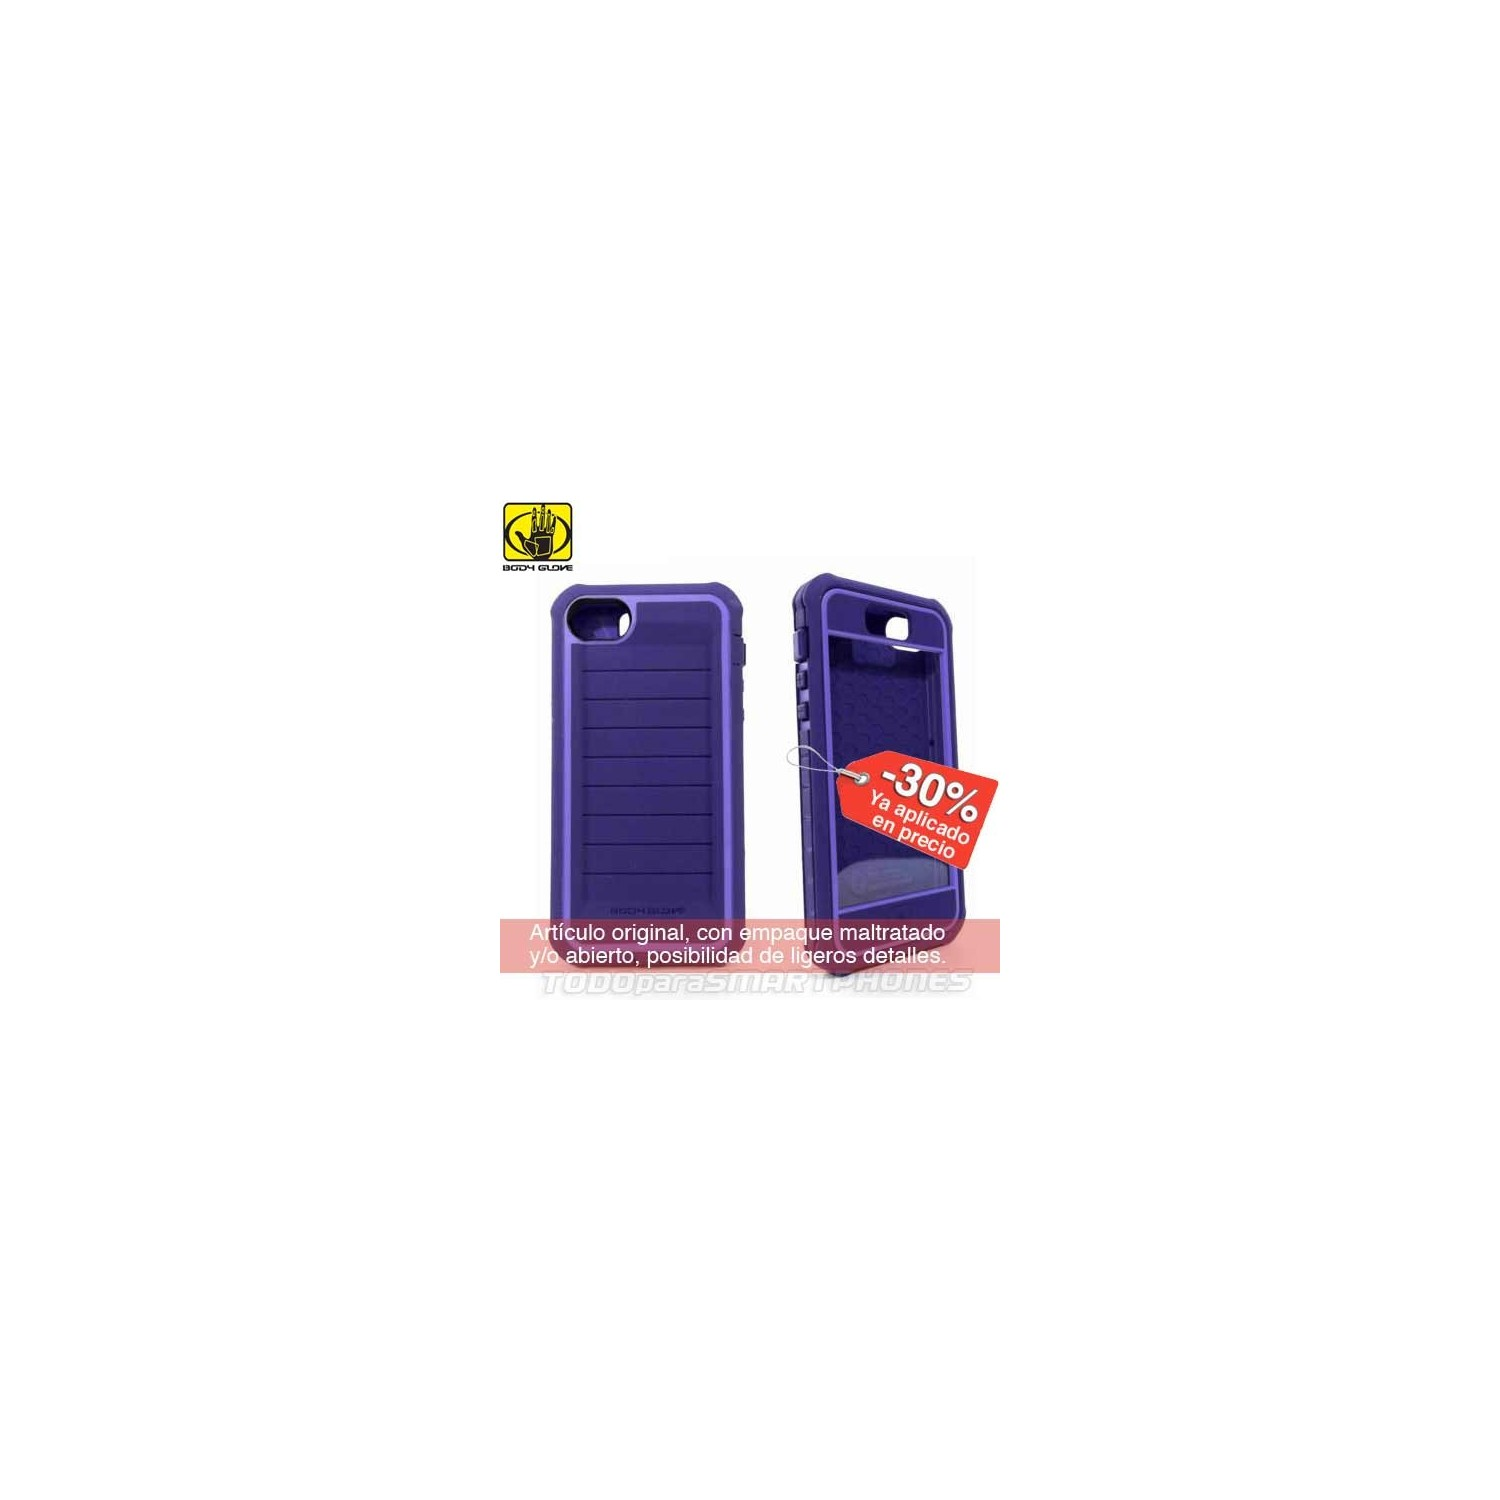 Case - Body Glove for iPhone 5 Shocksuit purple